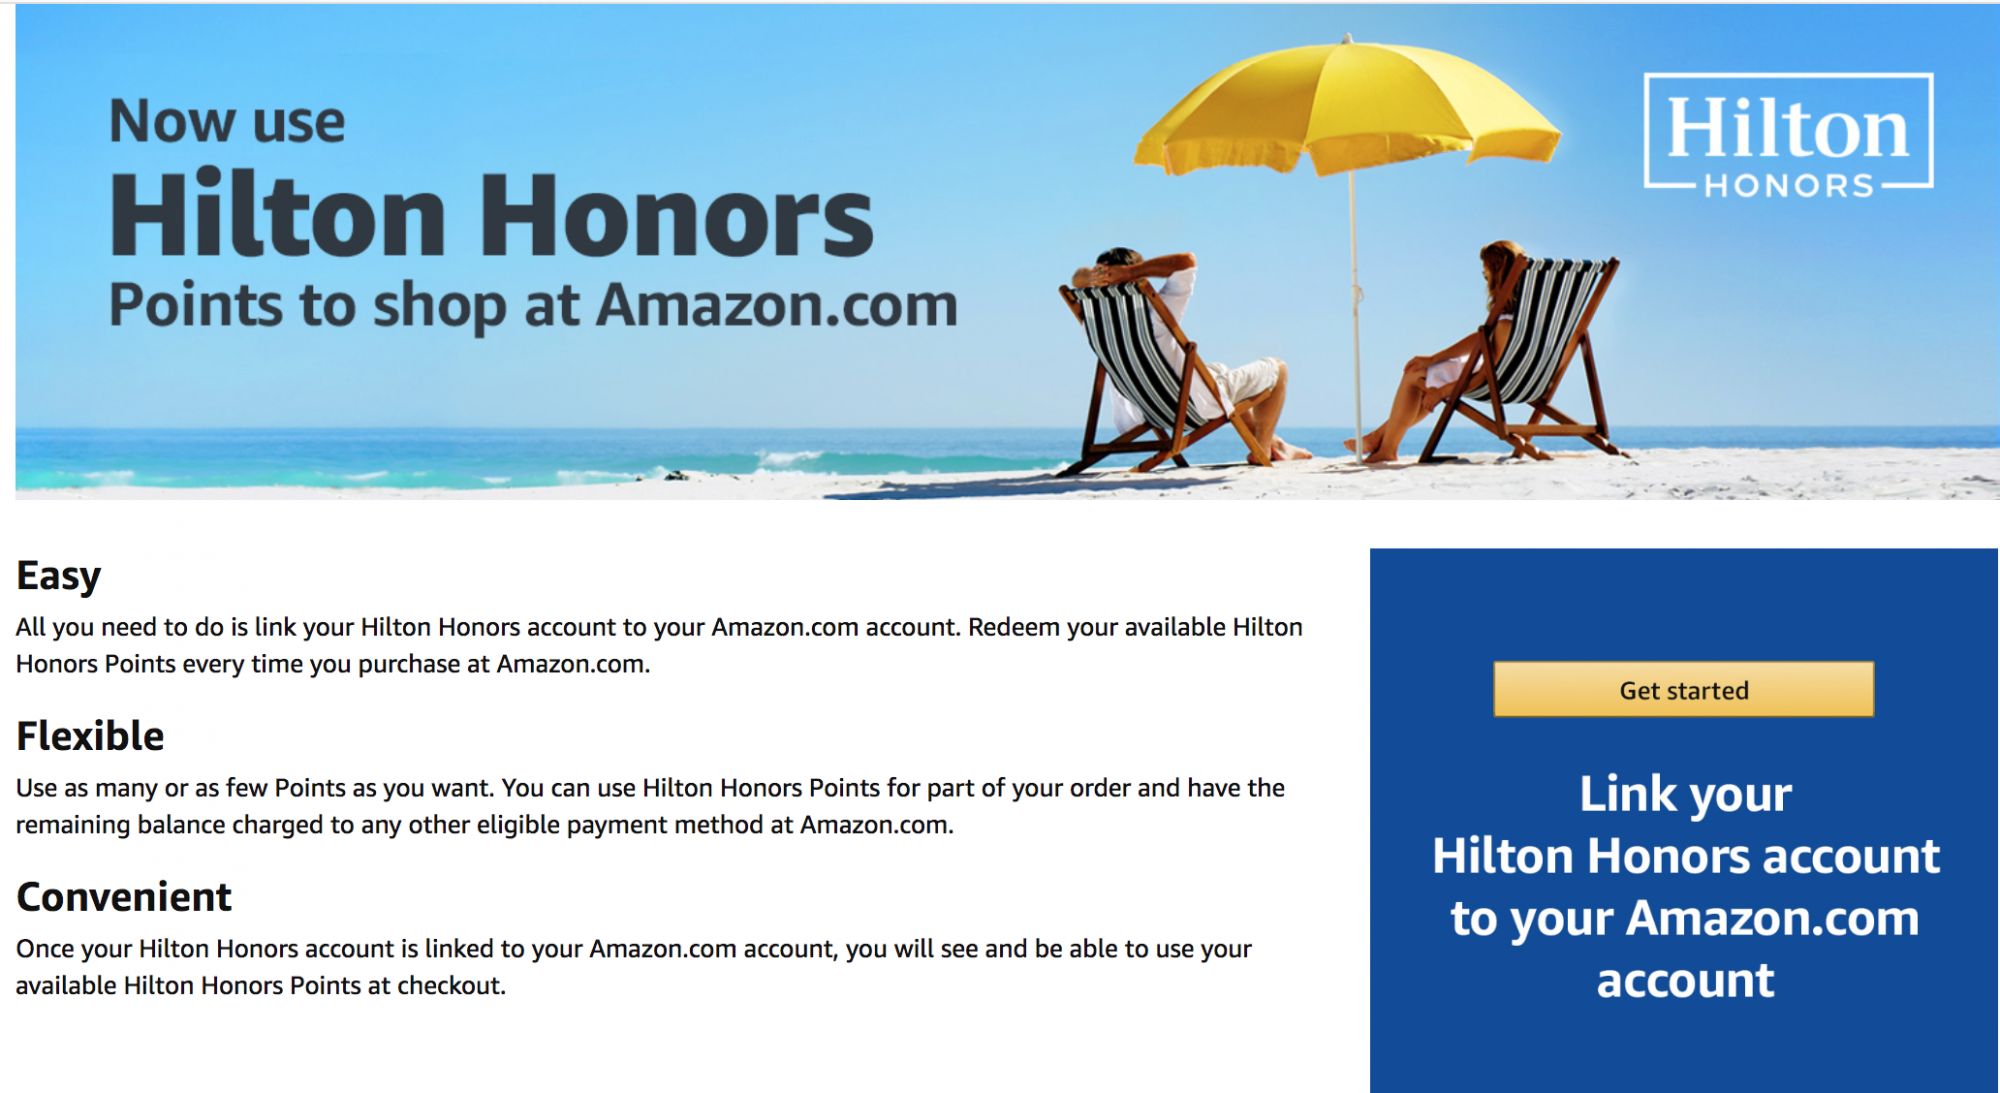 Connect Your Hilton Account to Your Amazon Account to Use Hilton Points for Credit on Amazon.com